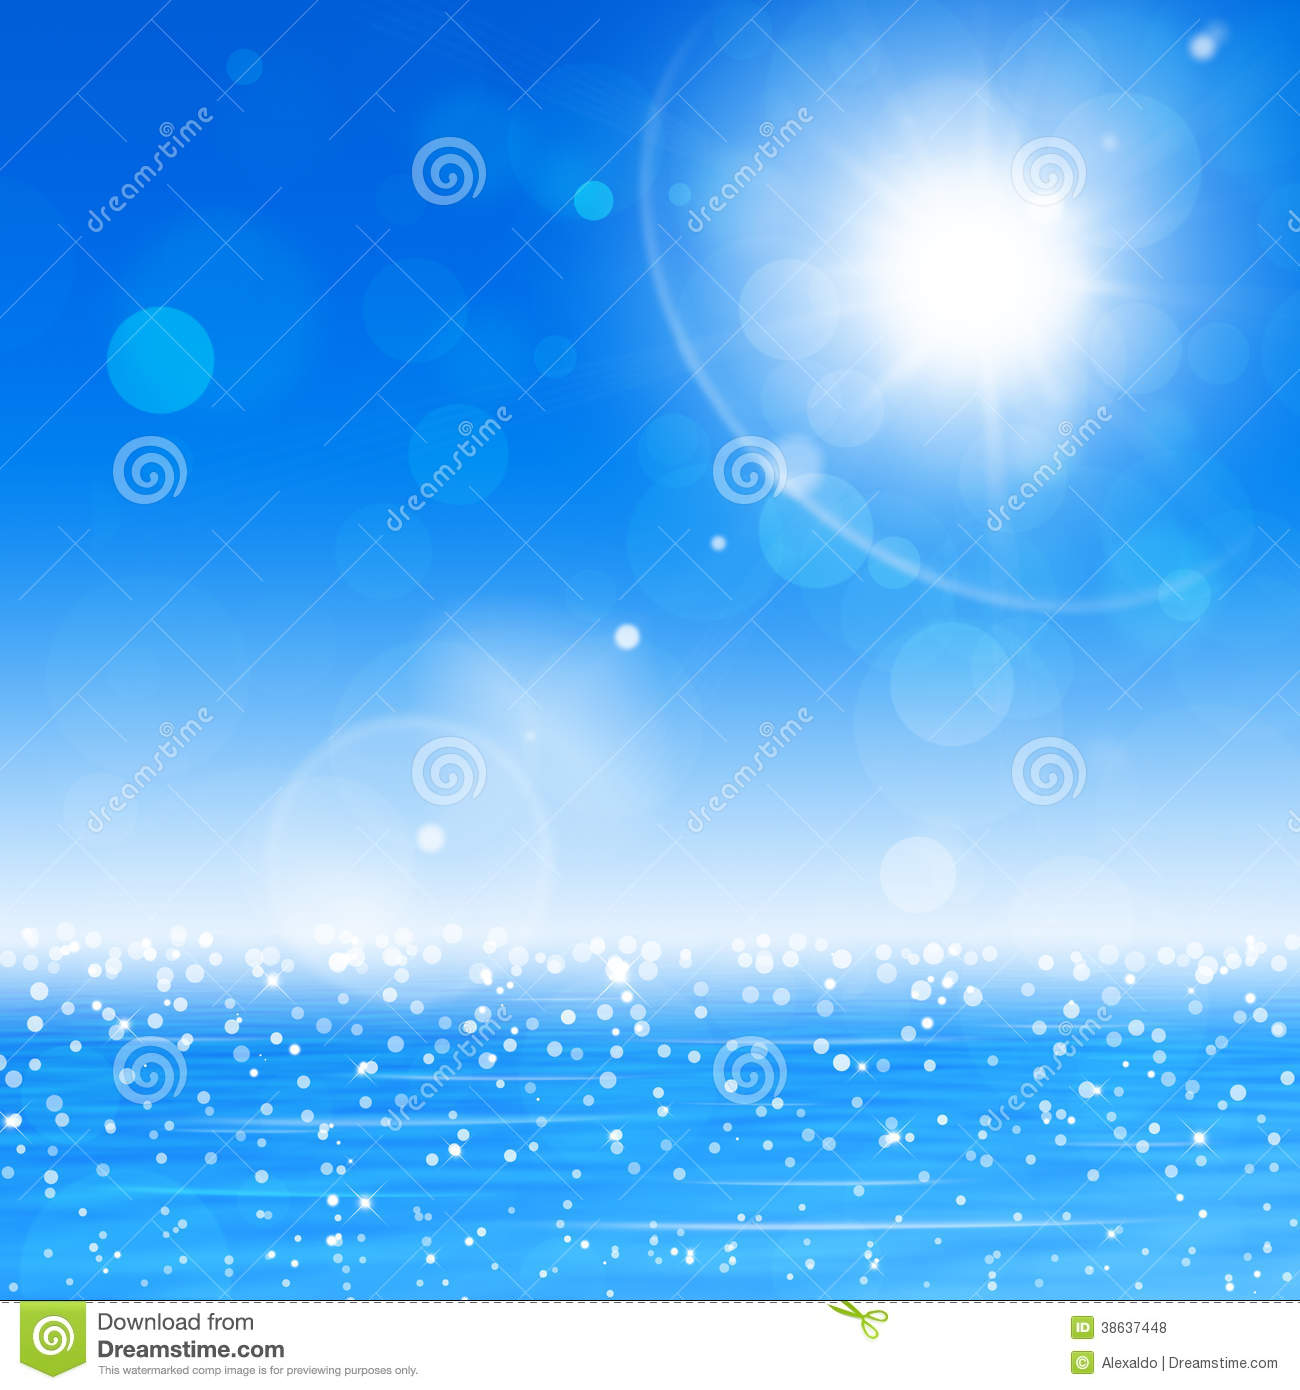 Nature Images 2mb: Ocean Sun Blurry Lights Stock Photo. Image Of Background